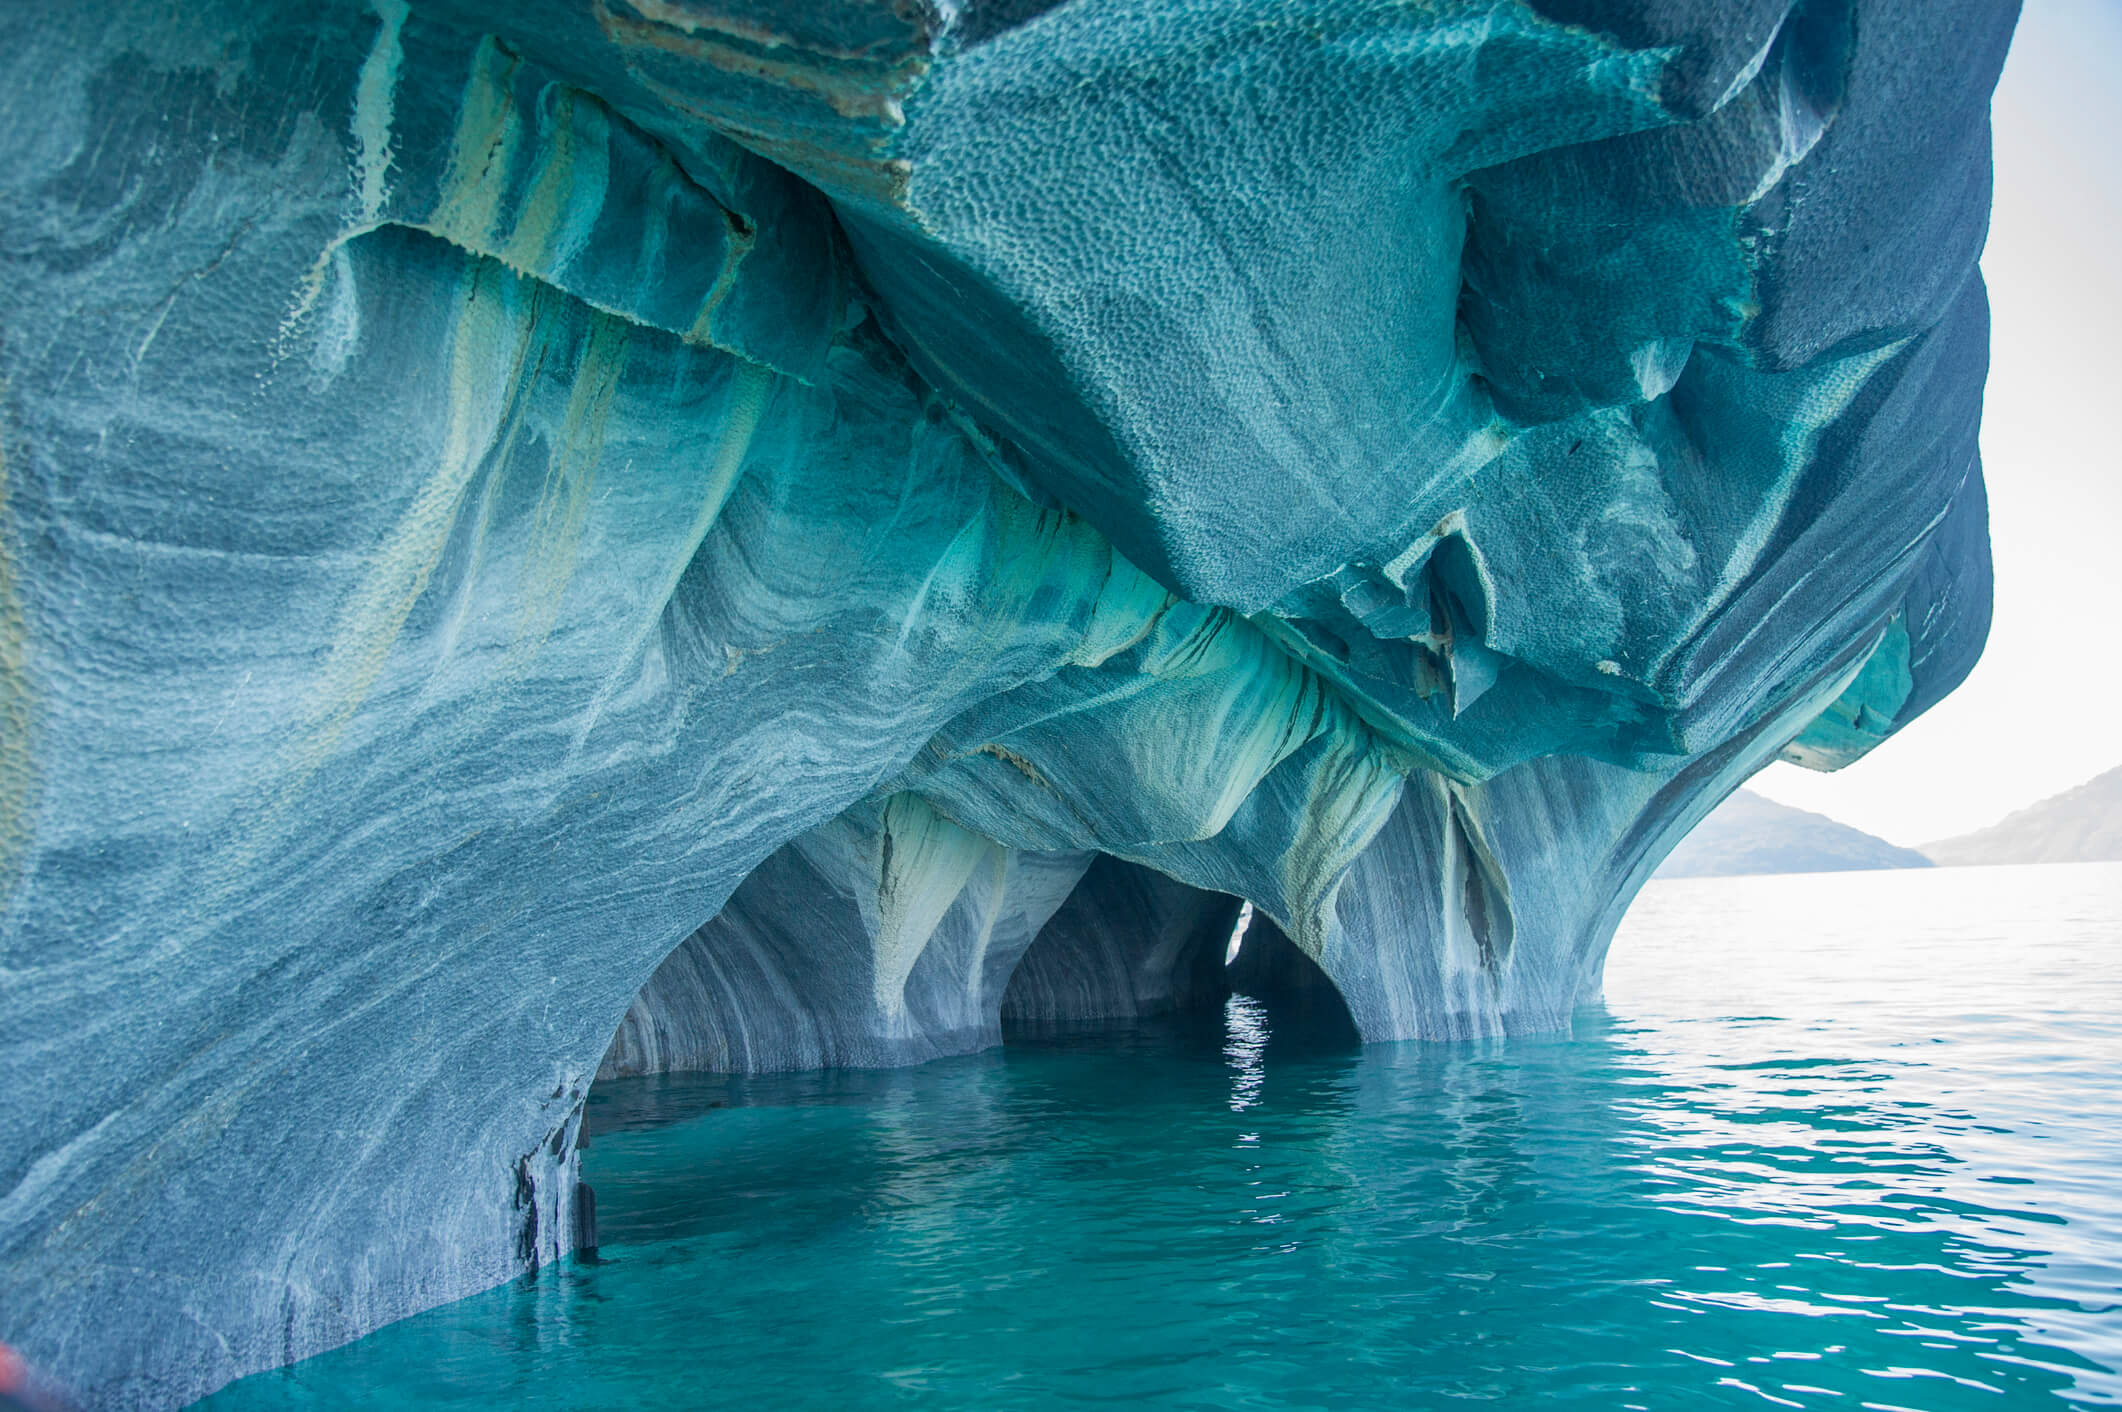 Seaside caves of marble carved out by lapping water.